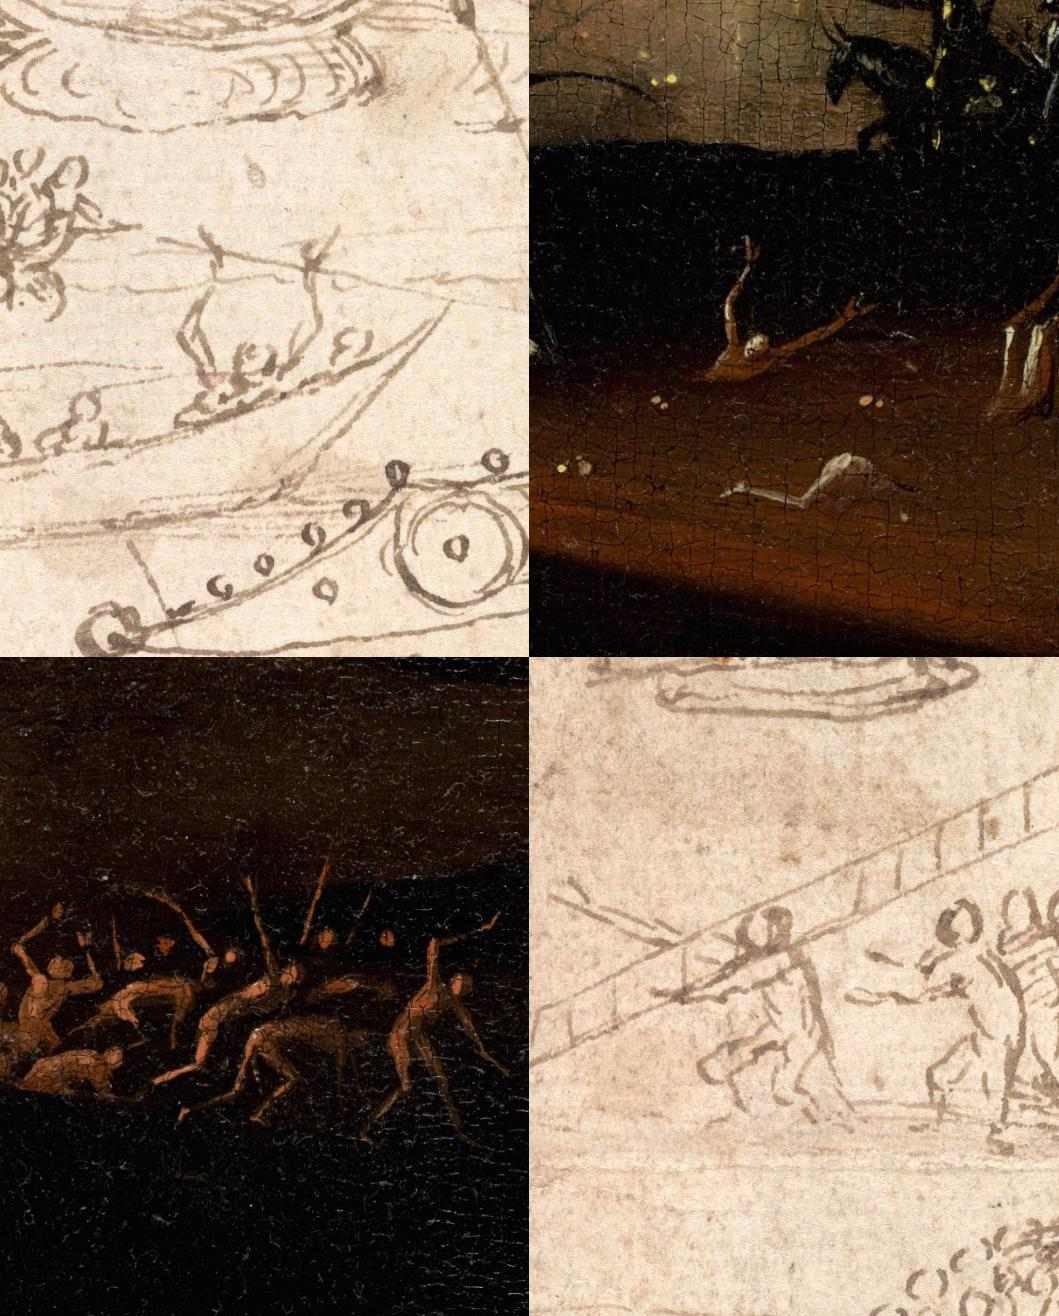 Comparison of small figures in the Infernal Landscape (private collection) and The Garden of Earthly Delights (Museo Nacional del Prado, Madrid)